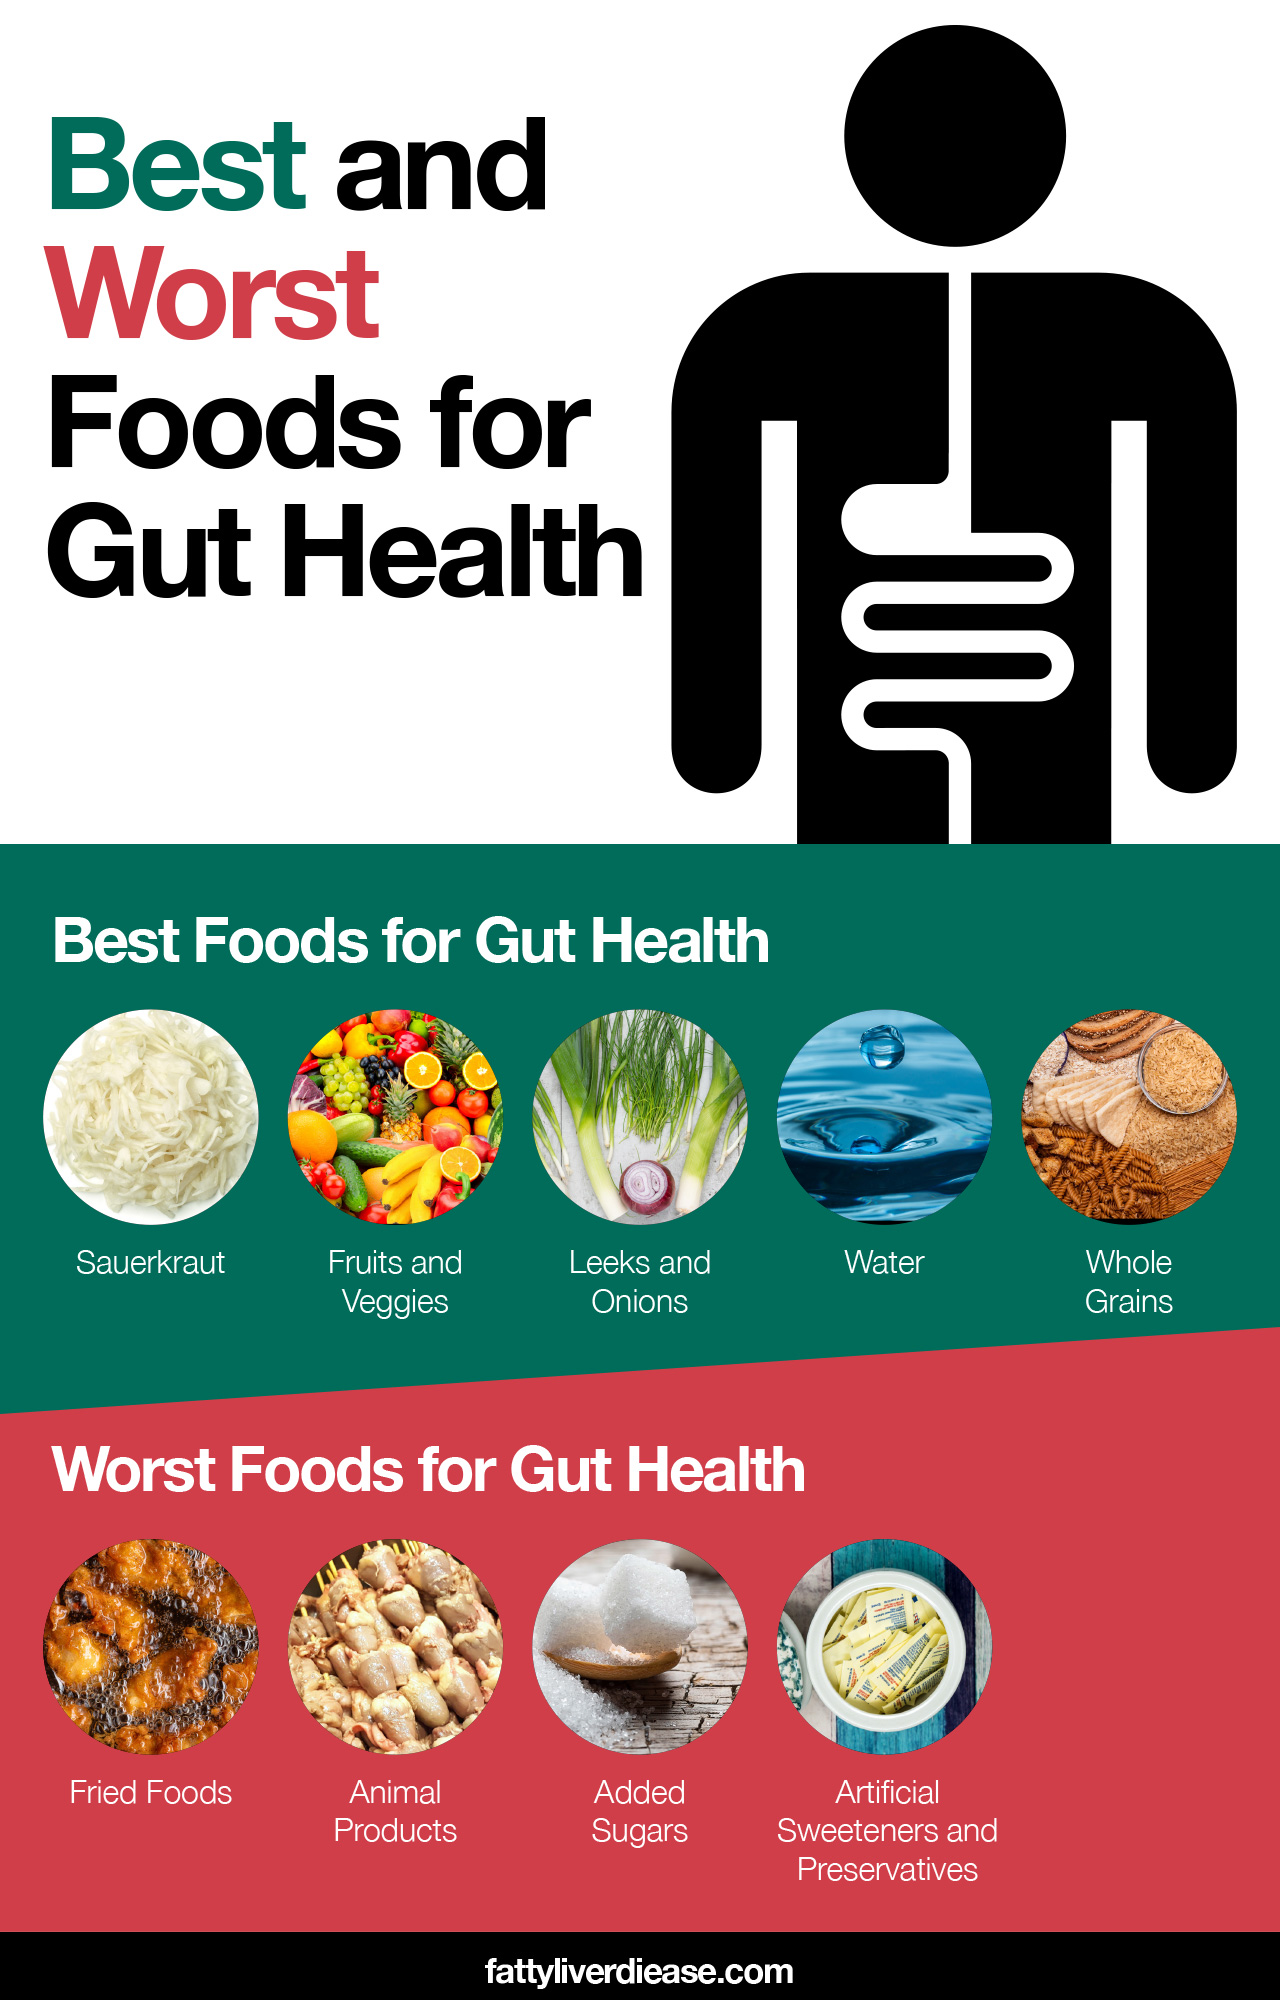 Best and Worst Foods for Gut Health